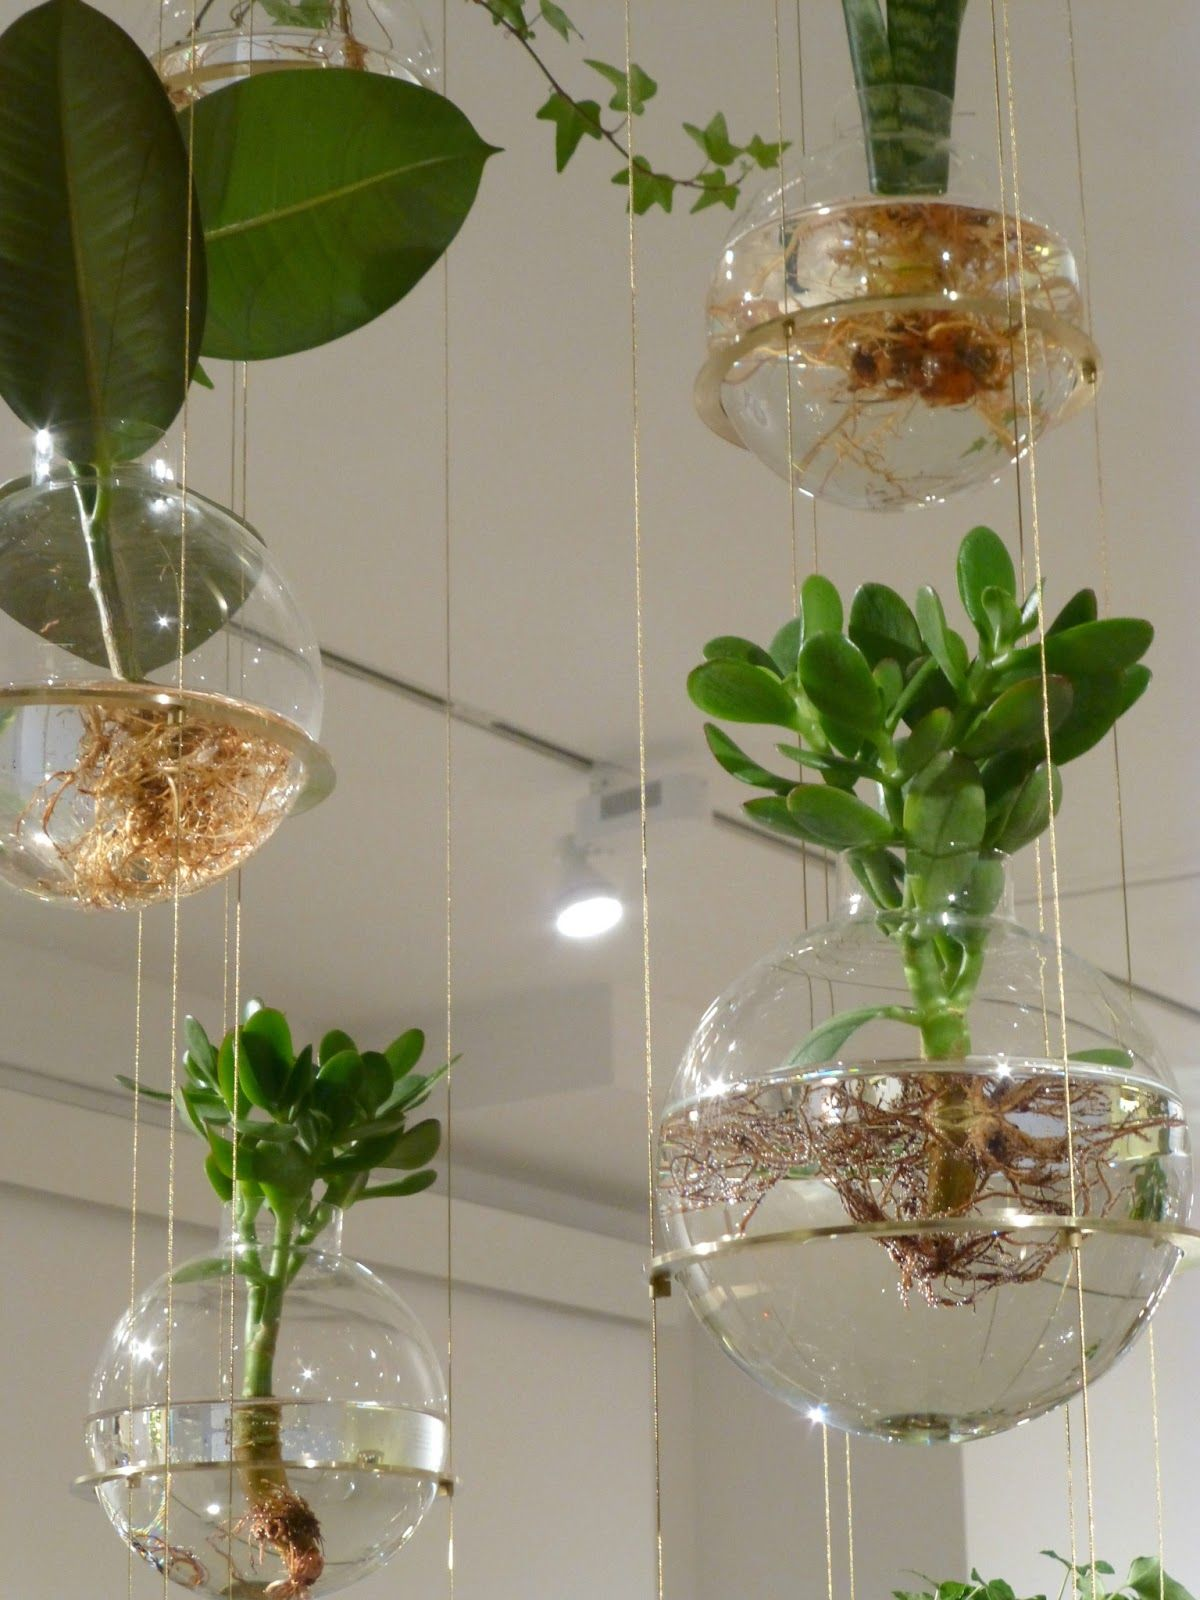 12 Unique Hanging Plants - The Interior Collective | Home ...